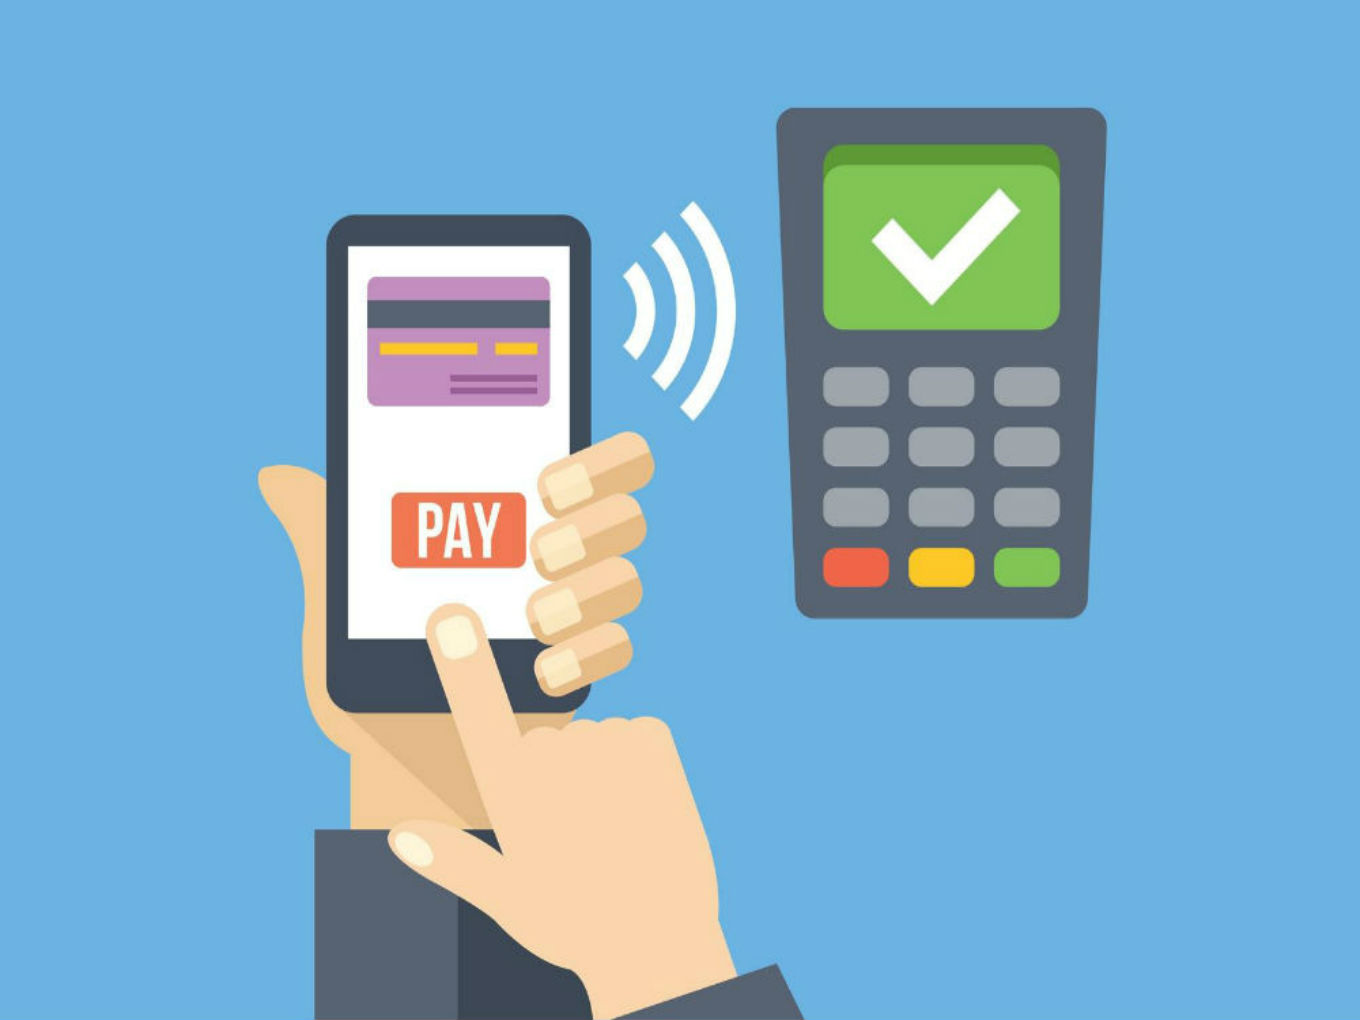 RBI lays out rules to make mobile wallet payments seamless